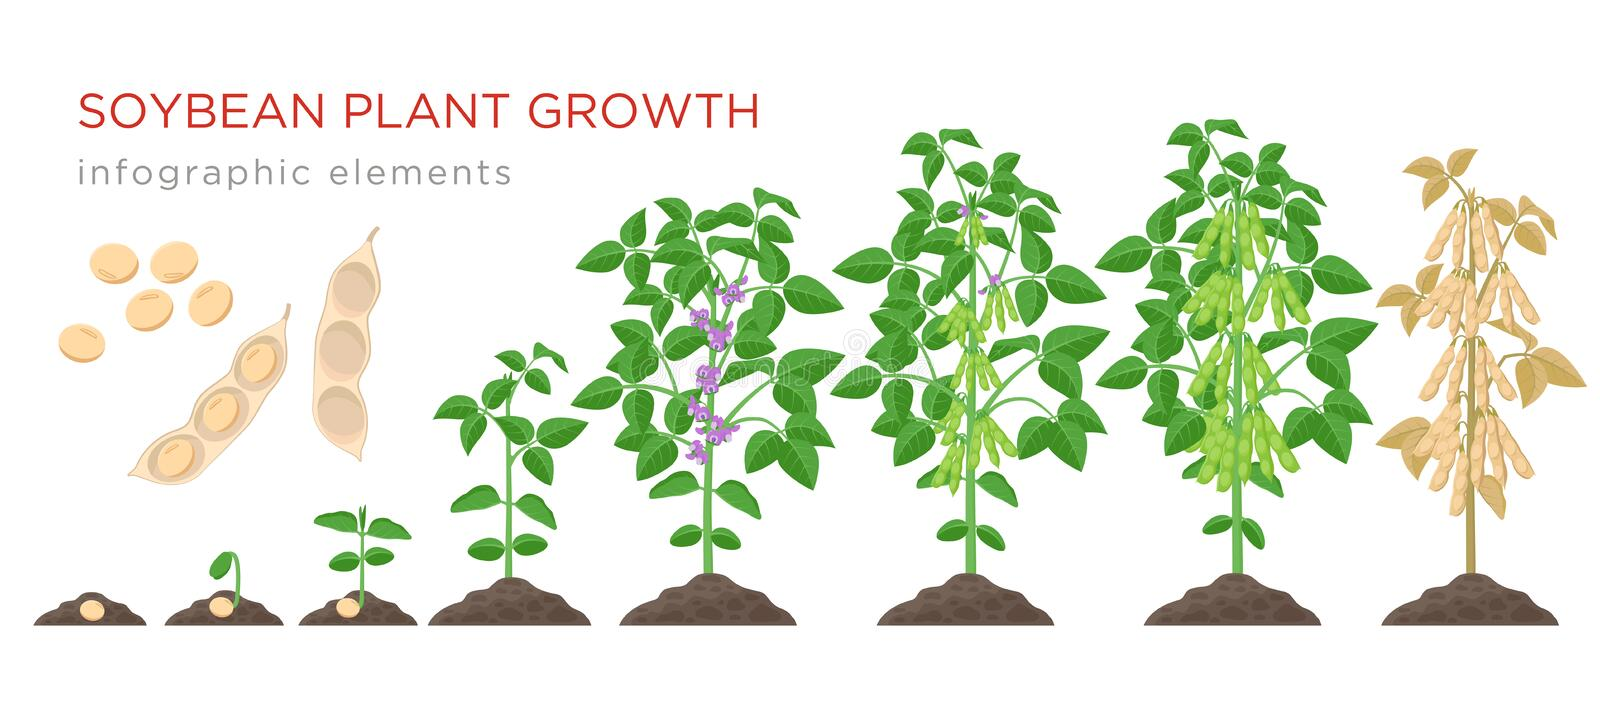 Pea Plant Growth Stages Infographic Elements In Flat Design